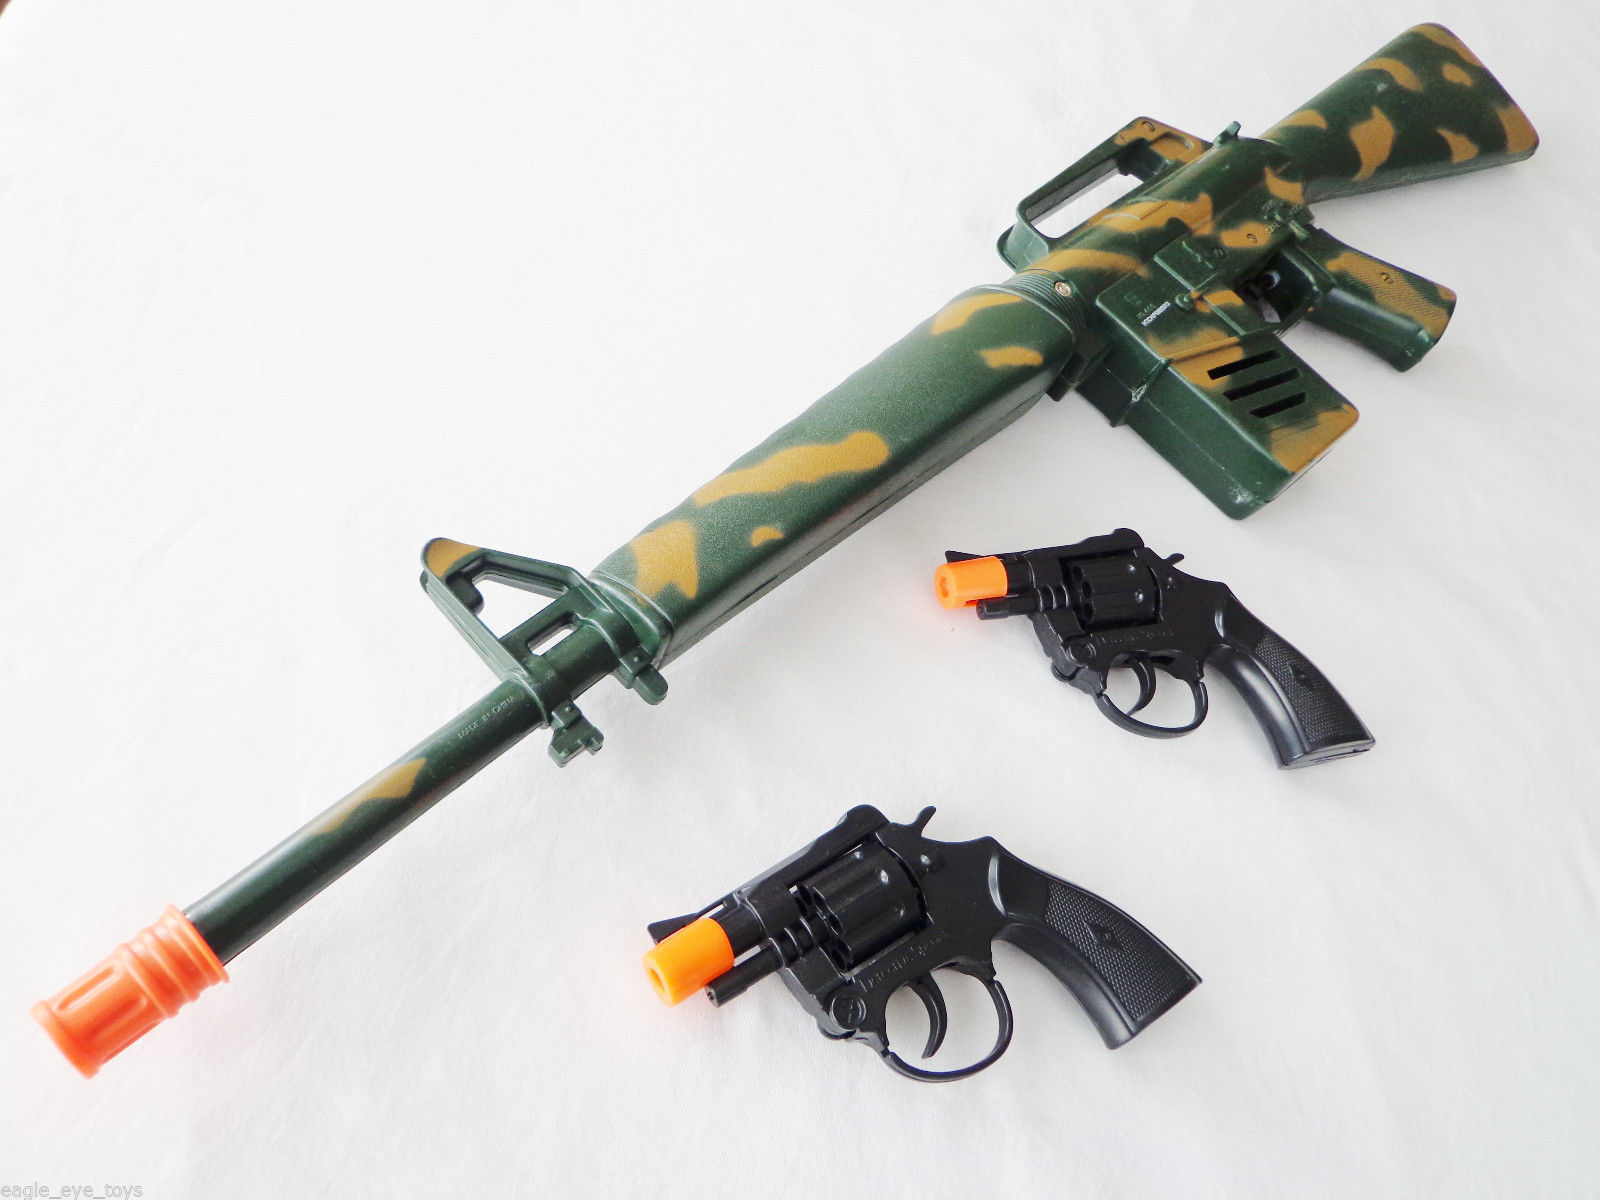 3X TOY GUNS! MASSIVE M-16 WATER GUN & 2X SNUB NOSE CAP GUN DETECTIVE MILITARY